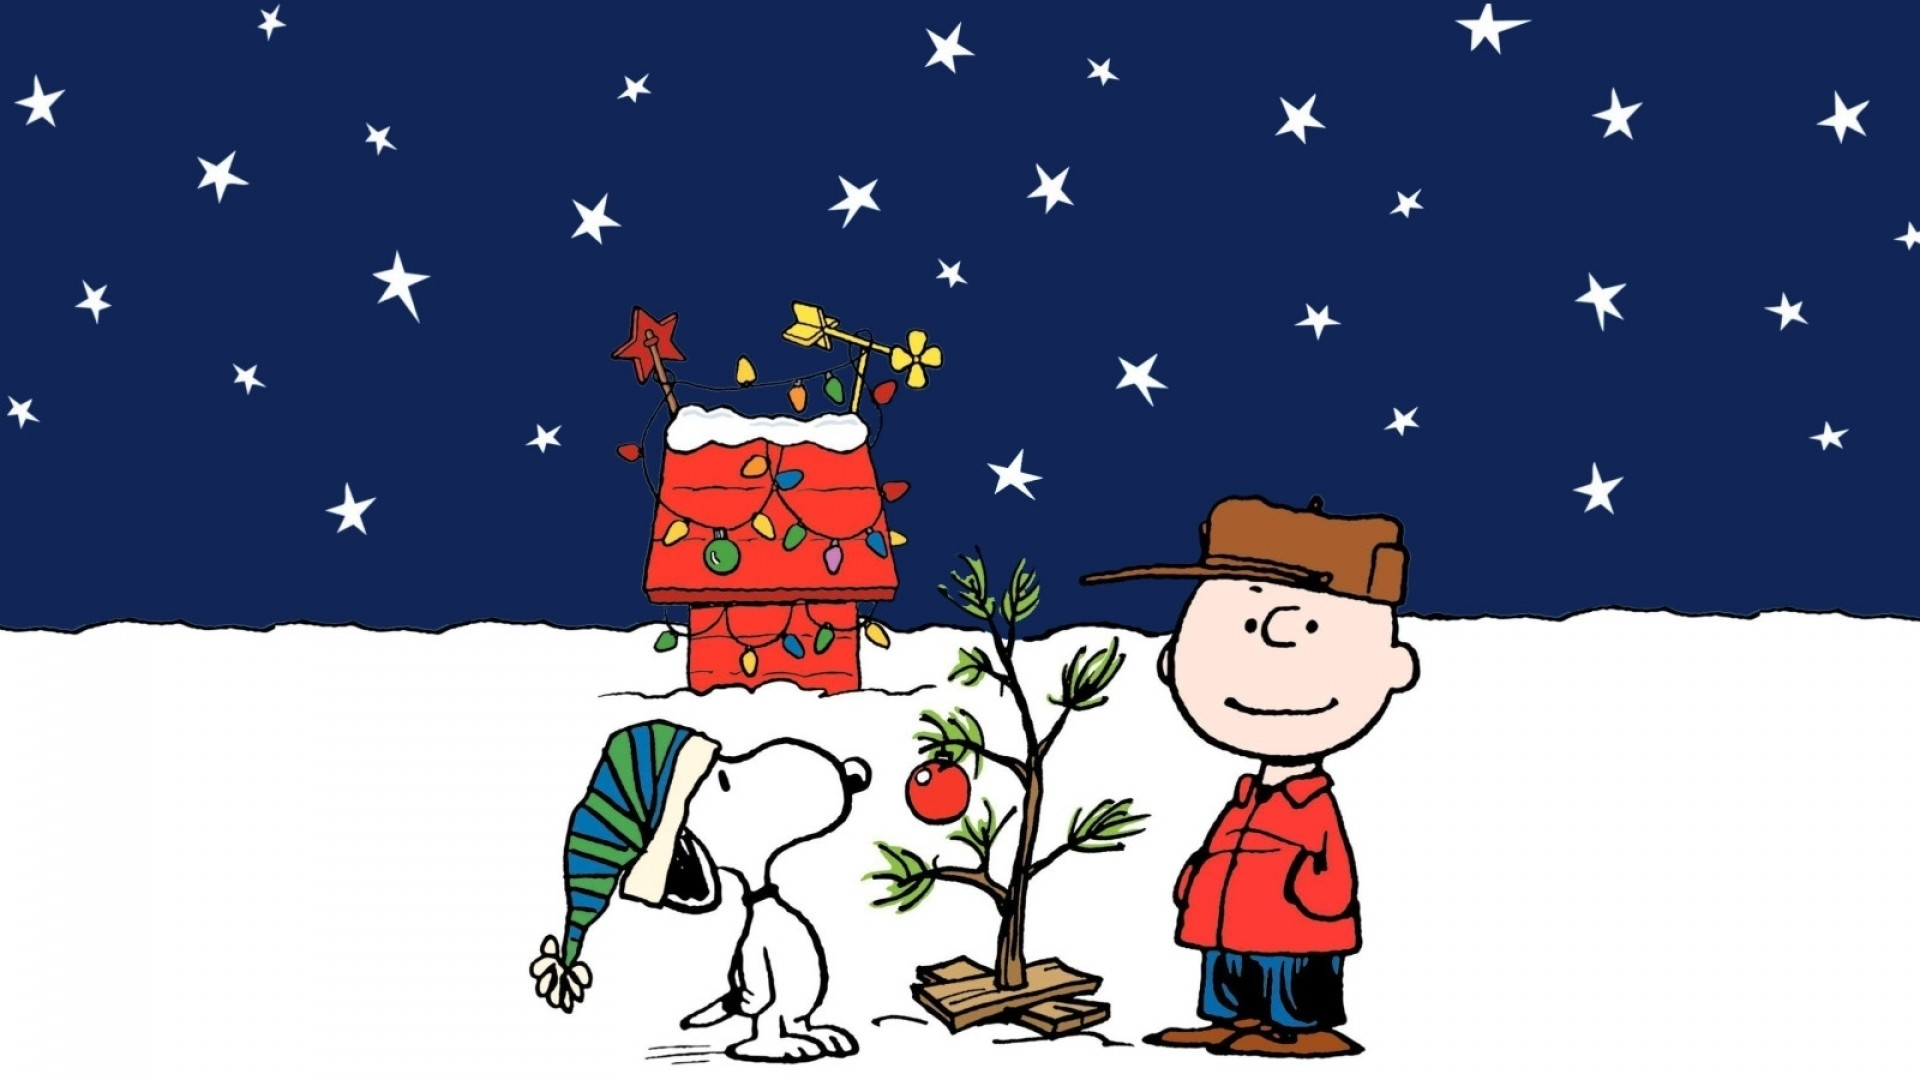 1920x1080 CHARLIE BROWN peanuts comics snoopy christmas gg wallpaper |  |  160960 | WallpaperUP